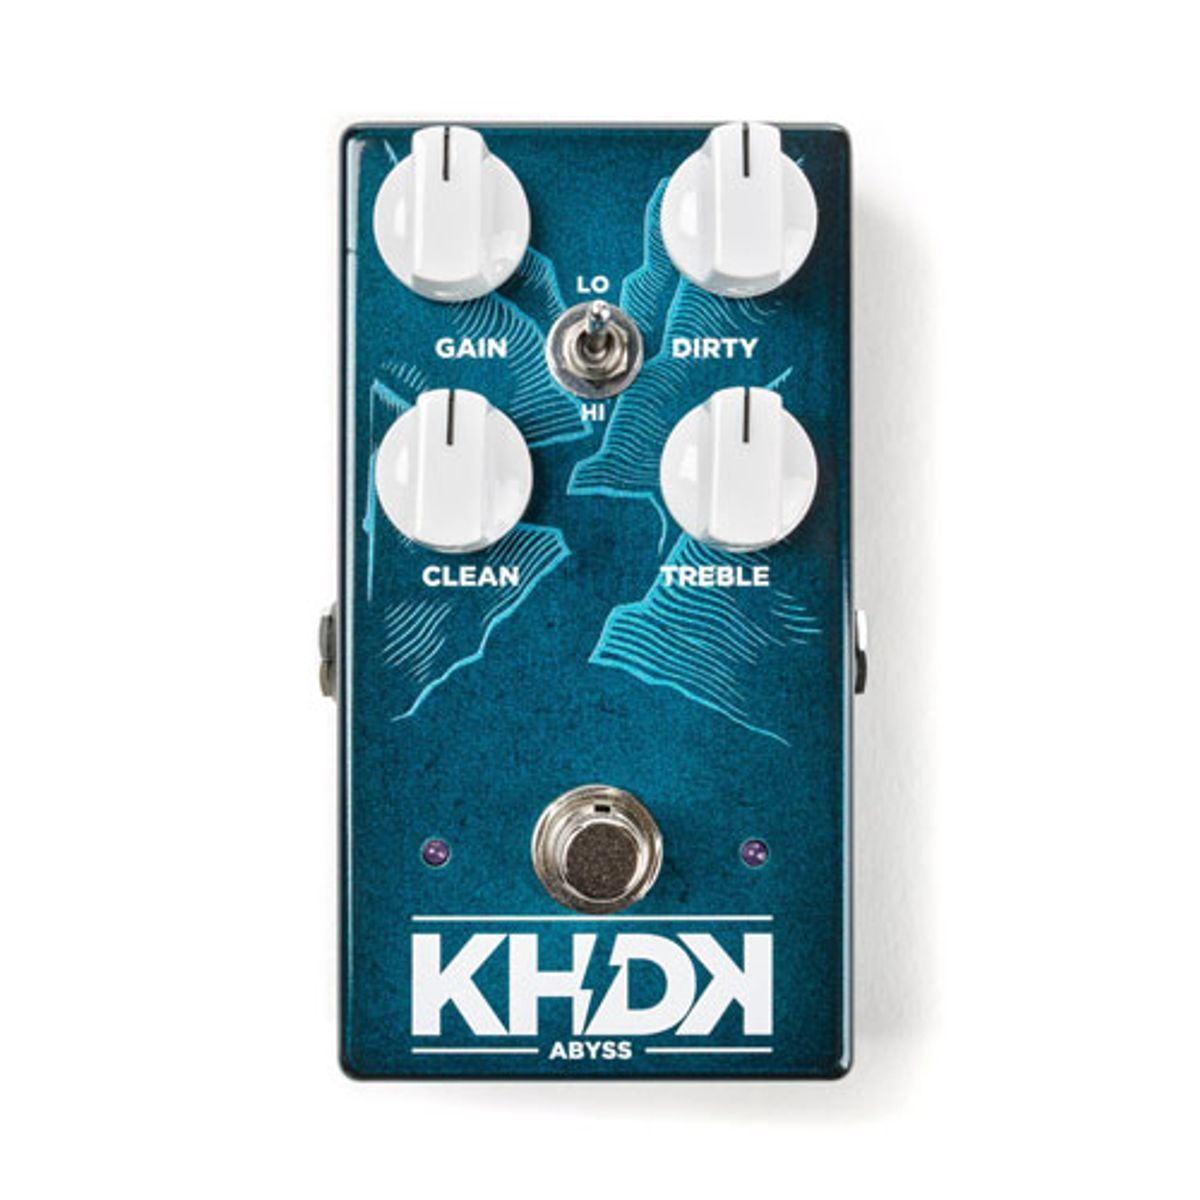 KHDK Electronics Introduces the Abyss Bass Overdrive